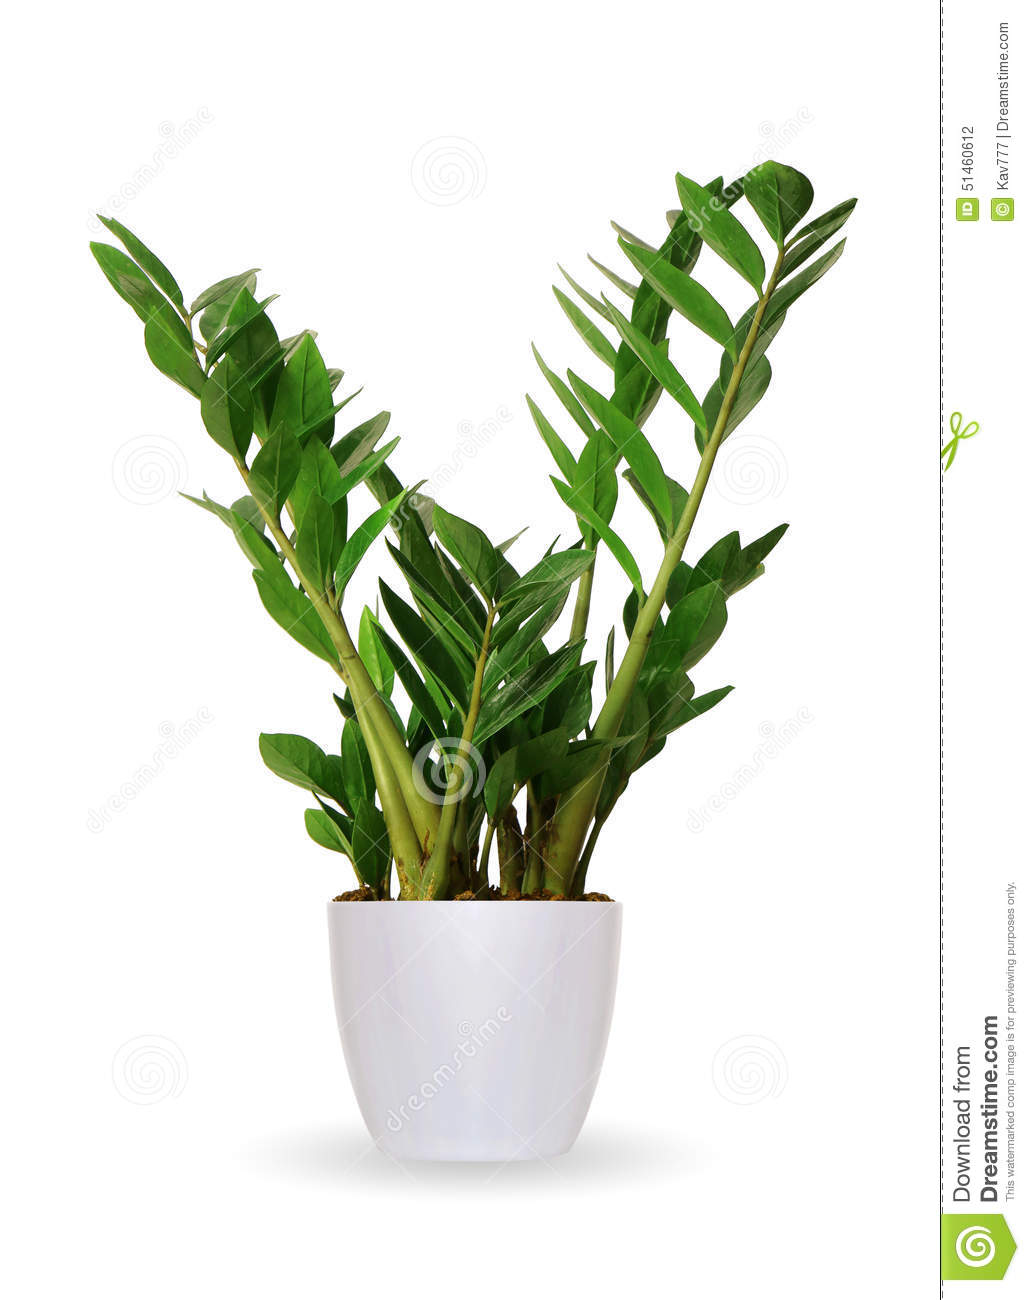 Pianta da appartamento zamioculcas una pianta in vaso for Pianta da pavimento verde